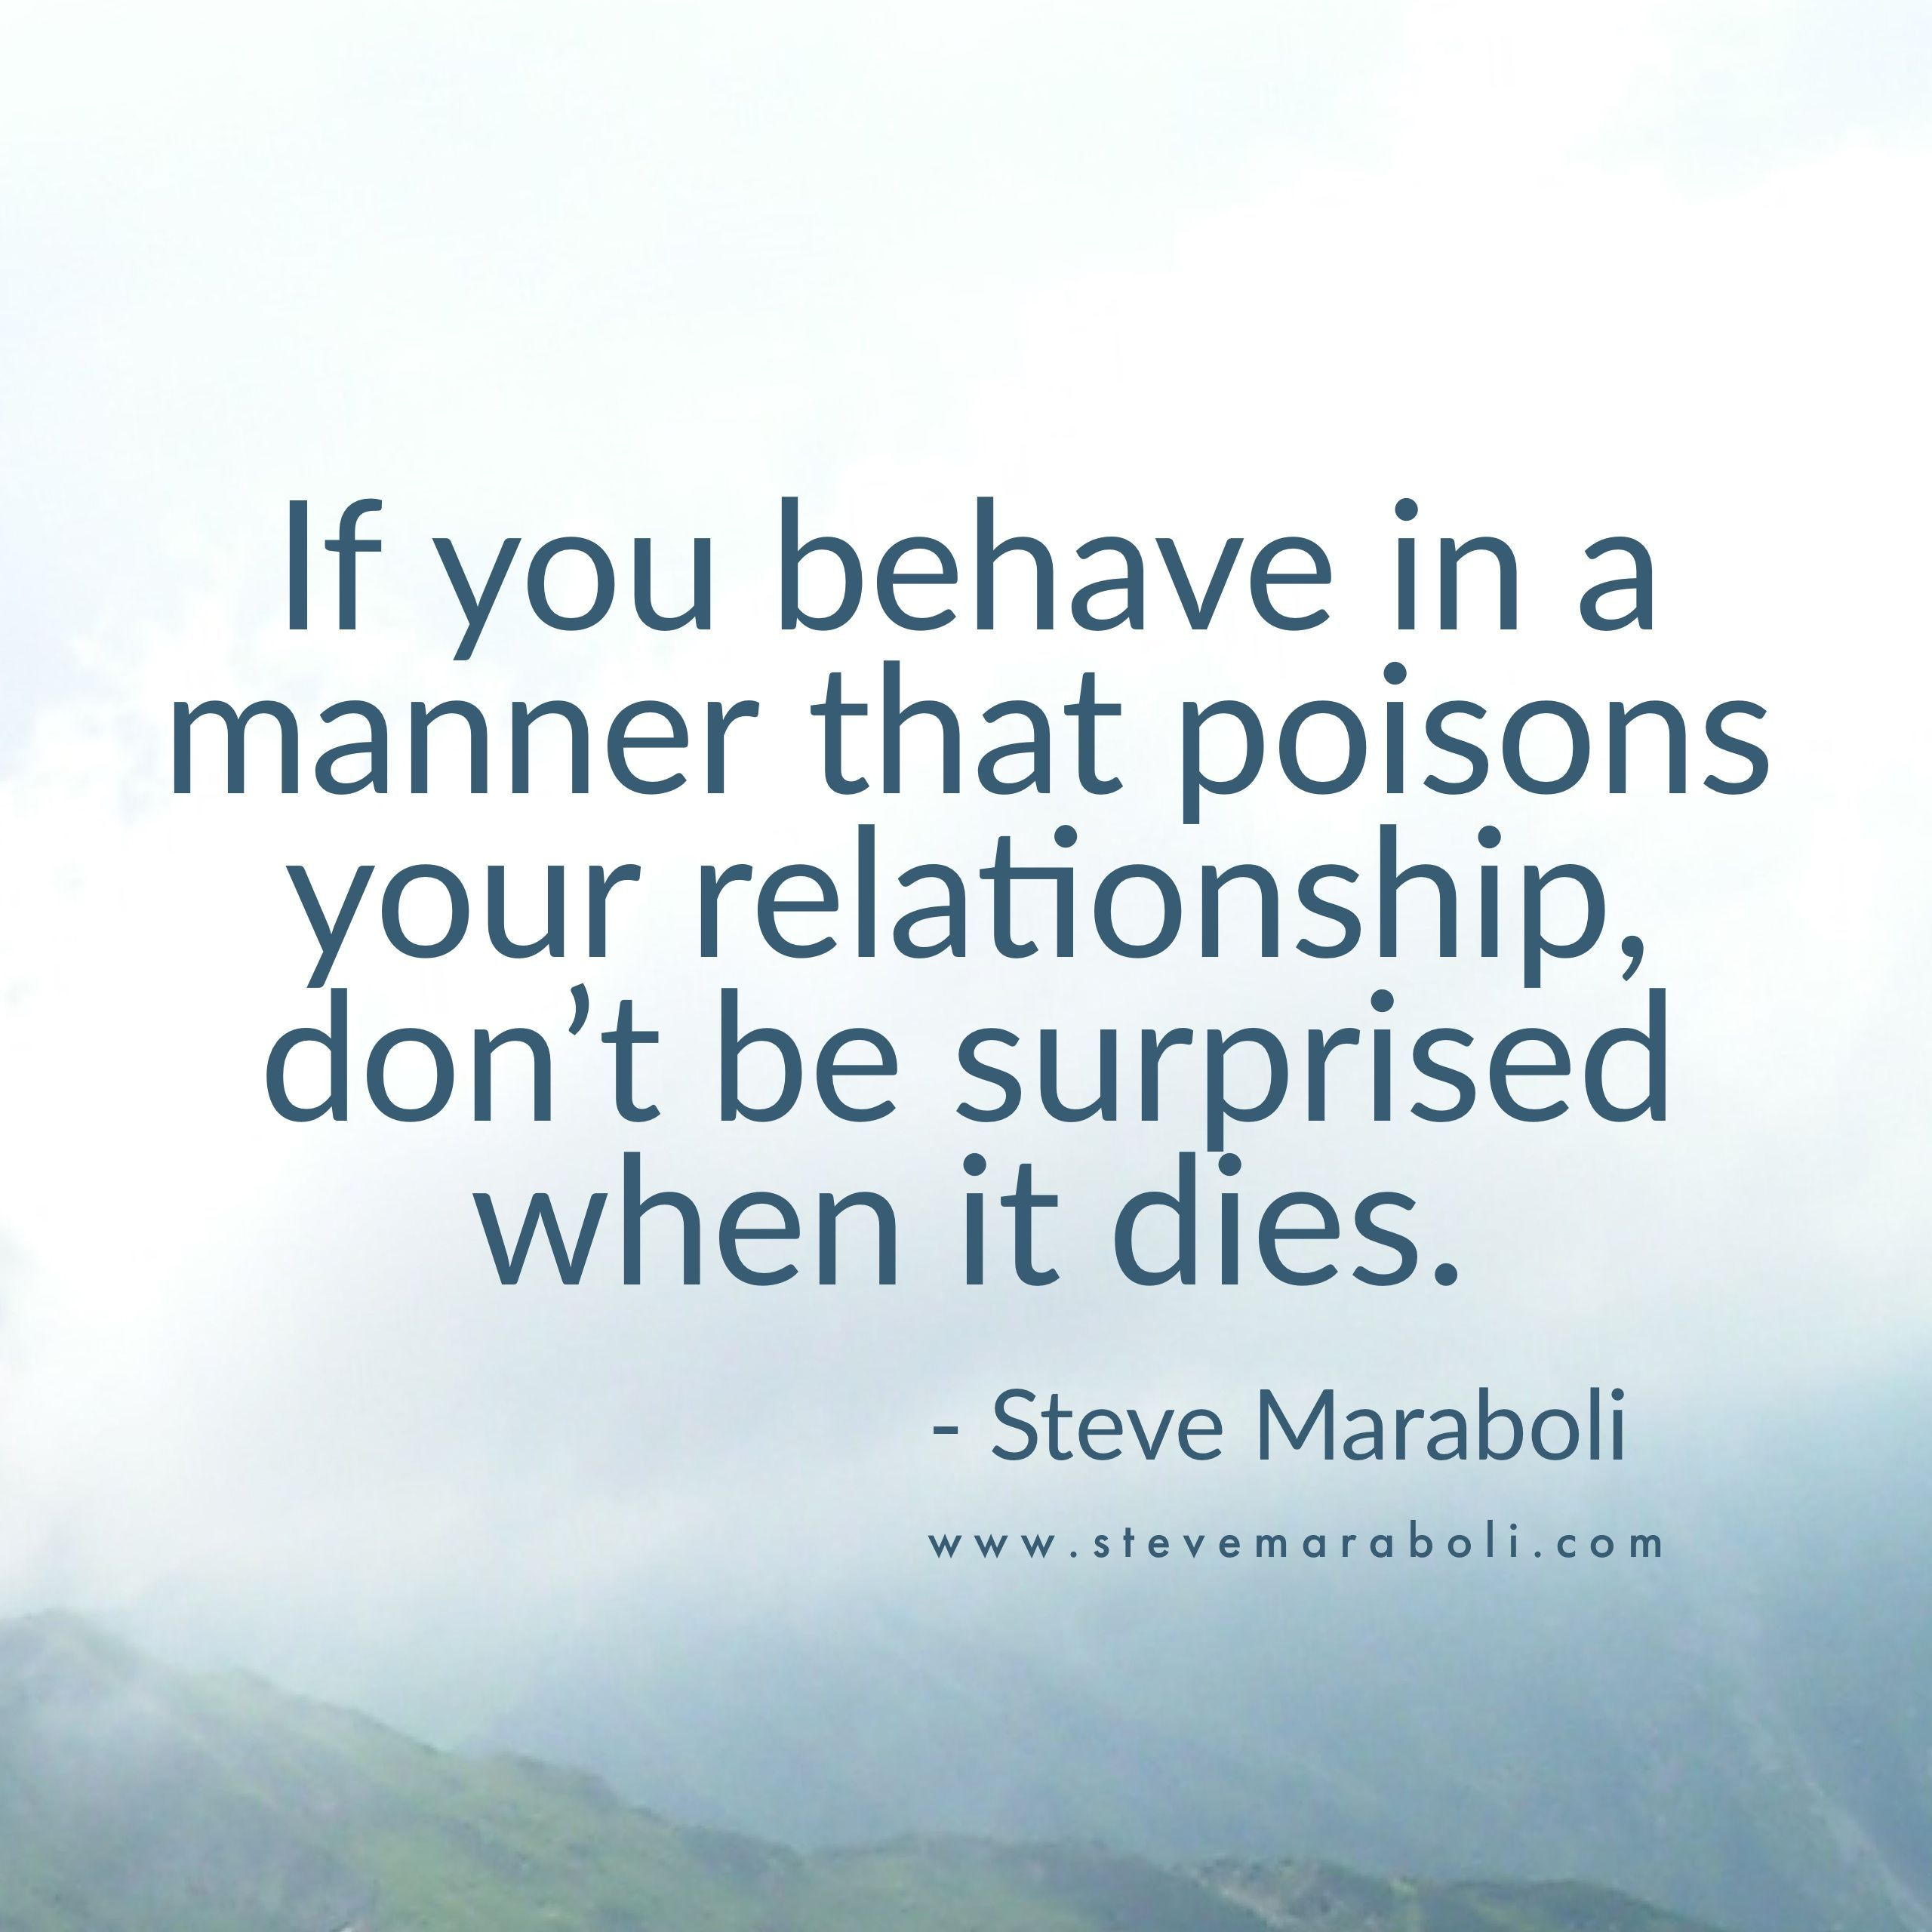 Abusive Relationship Quotes If You Behave In A Manner That Poisons Your Relationship Don't Be